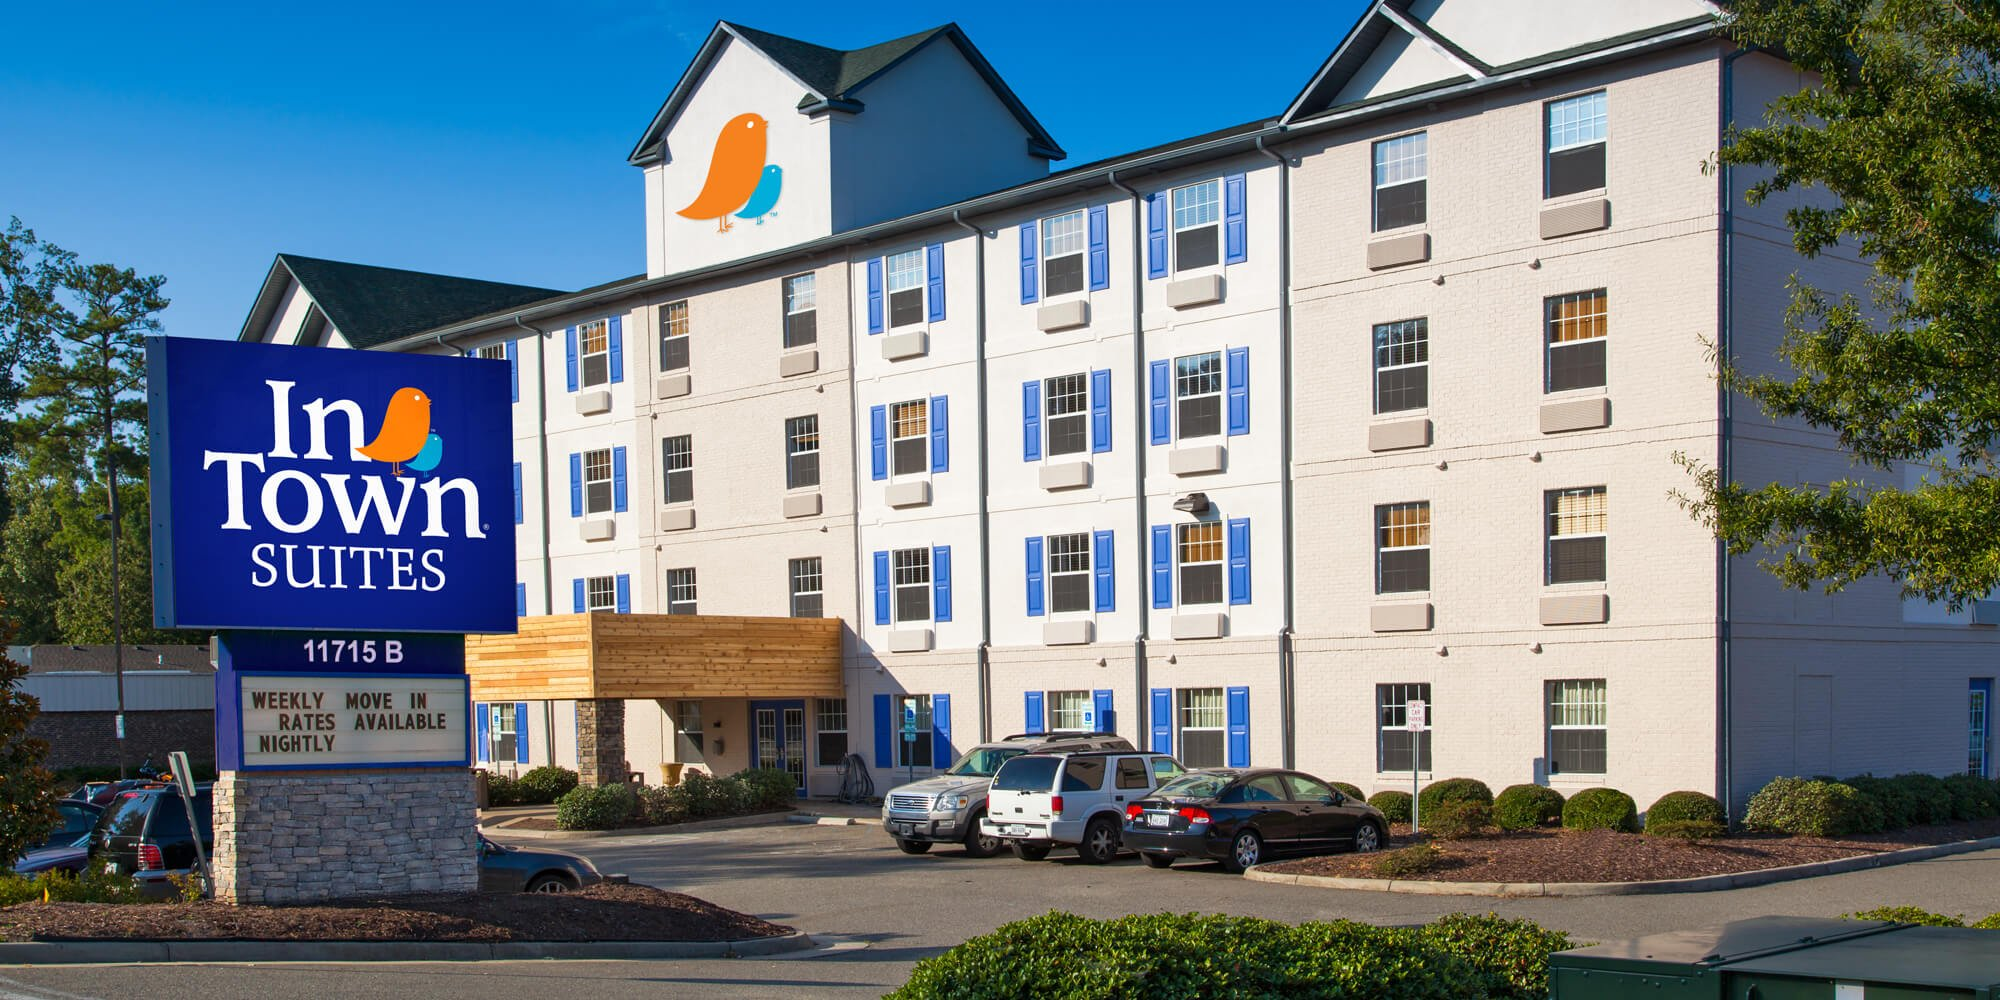 Exterior picture of InTown Suites' Newport News City Center location